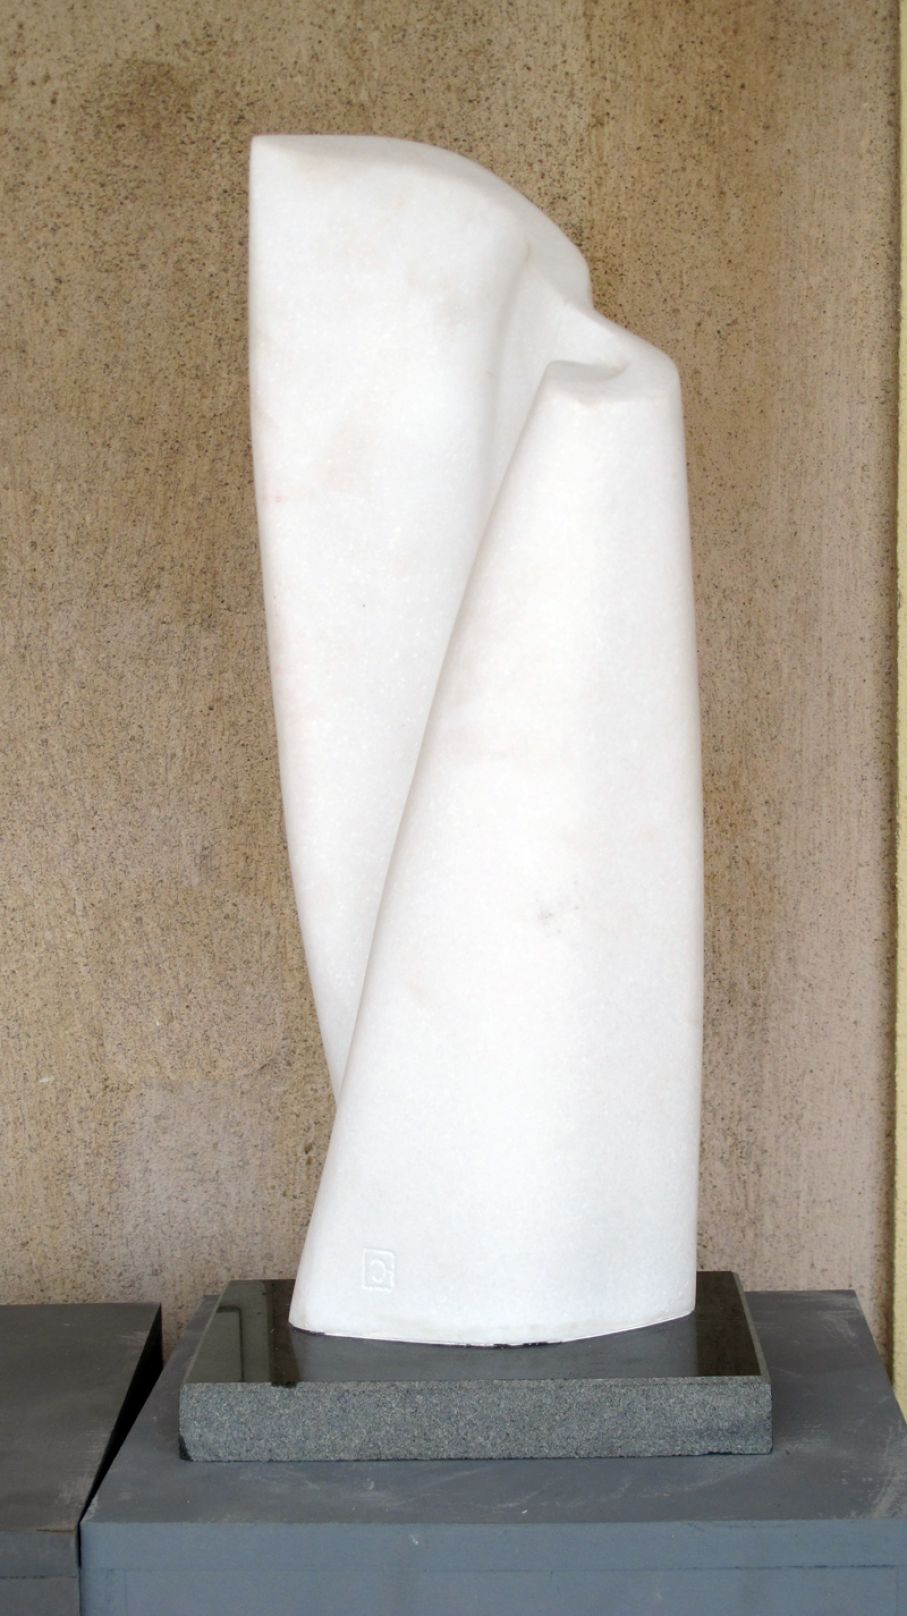 "BRIEF DESCRIPTION. Original marble sculpture of  Ciprian Hopirtean, completed within Myrό Antiques House premises, in Souroti, Thessaloniki, GREECE, as part of the Greek Marble Initiative, bearing the title ""Floriana"". Dimensions: 52 X 22 X 16 cm."